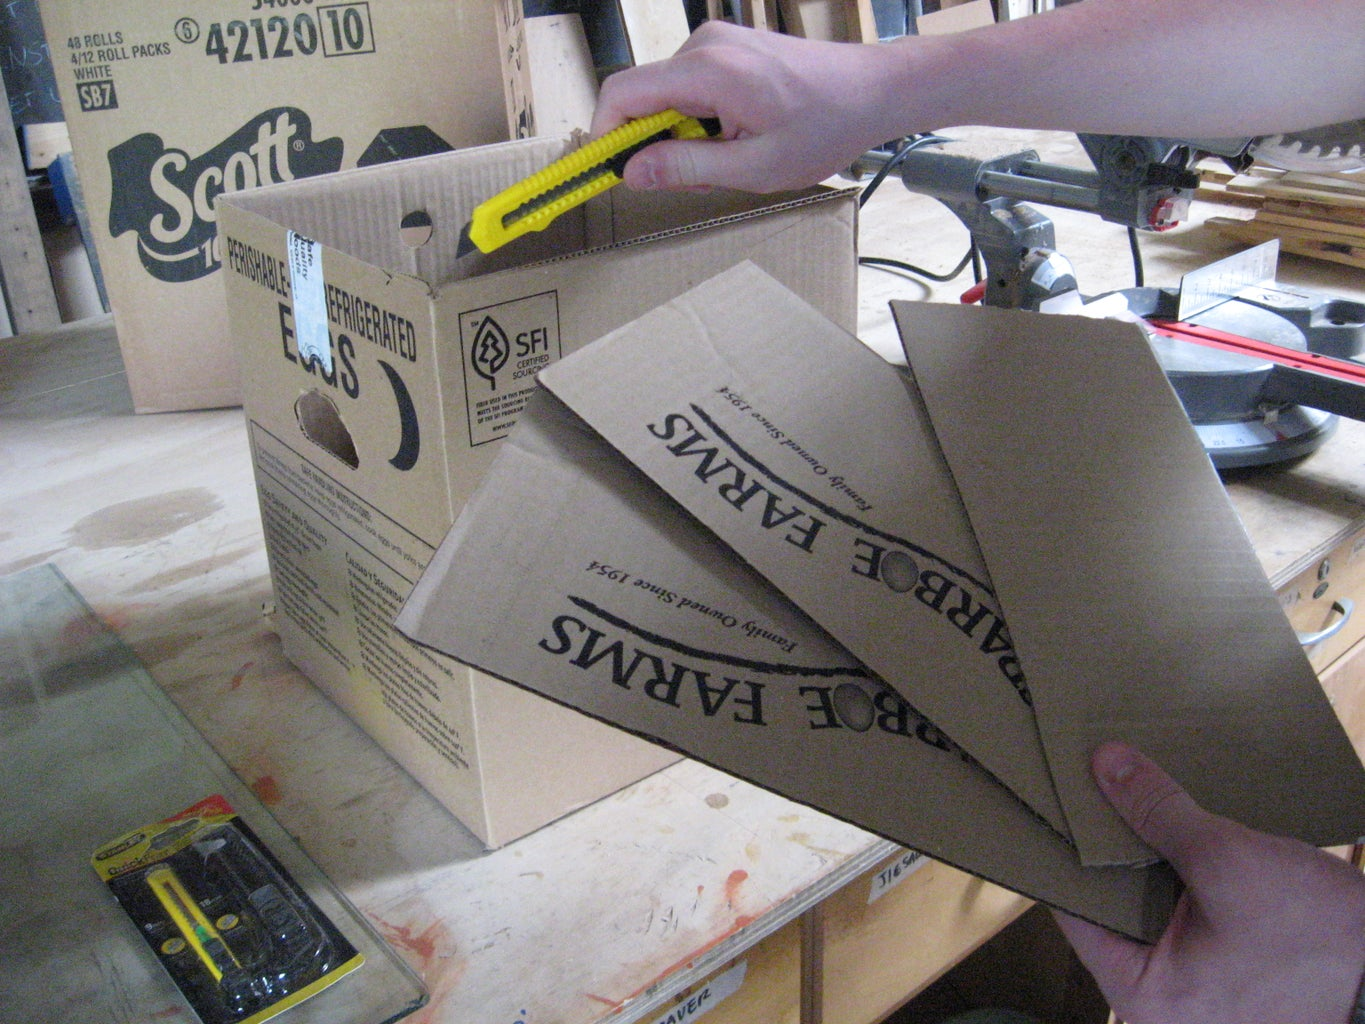 Cutting Off Flaps of Smaller Box